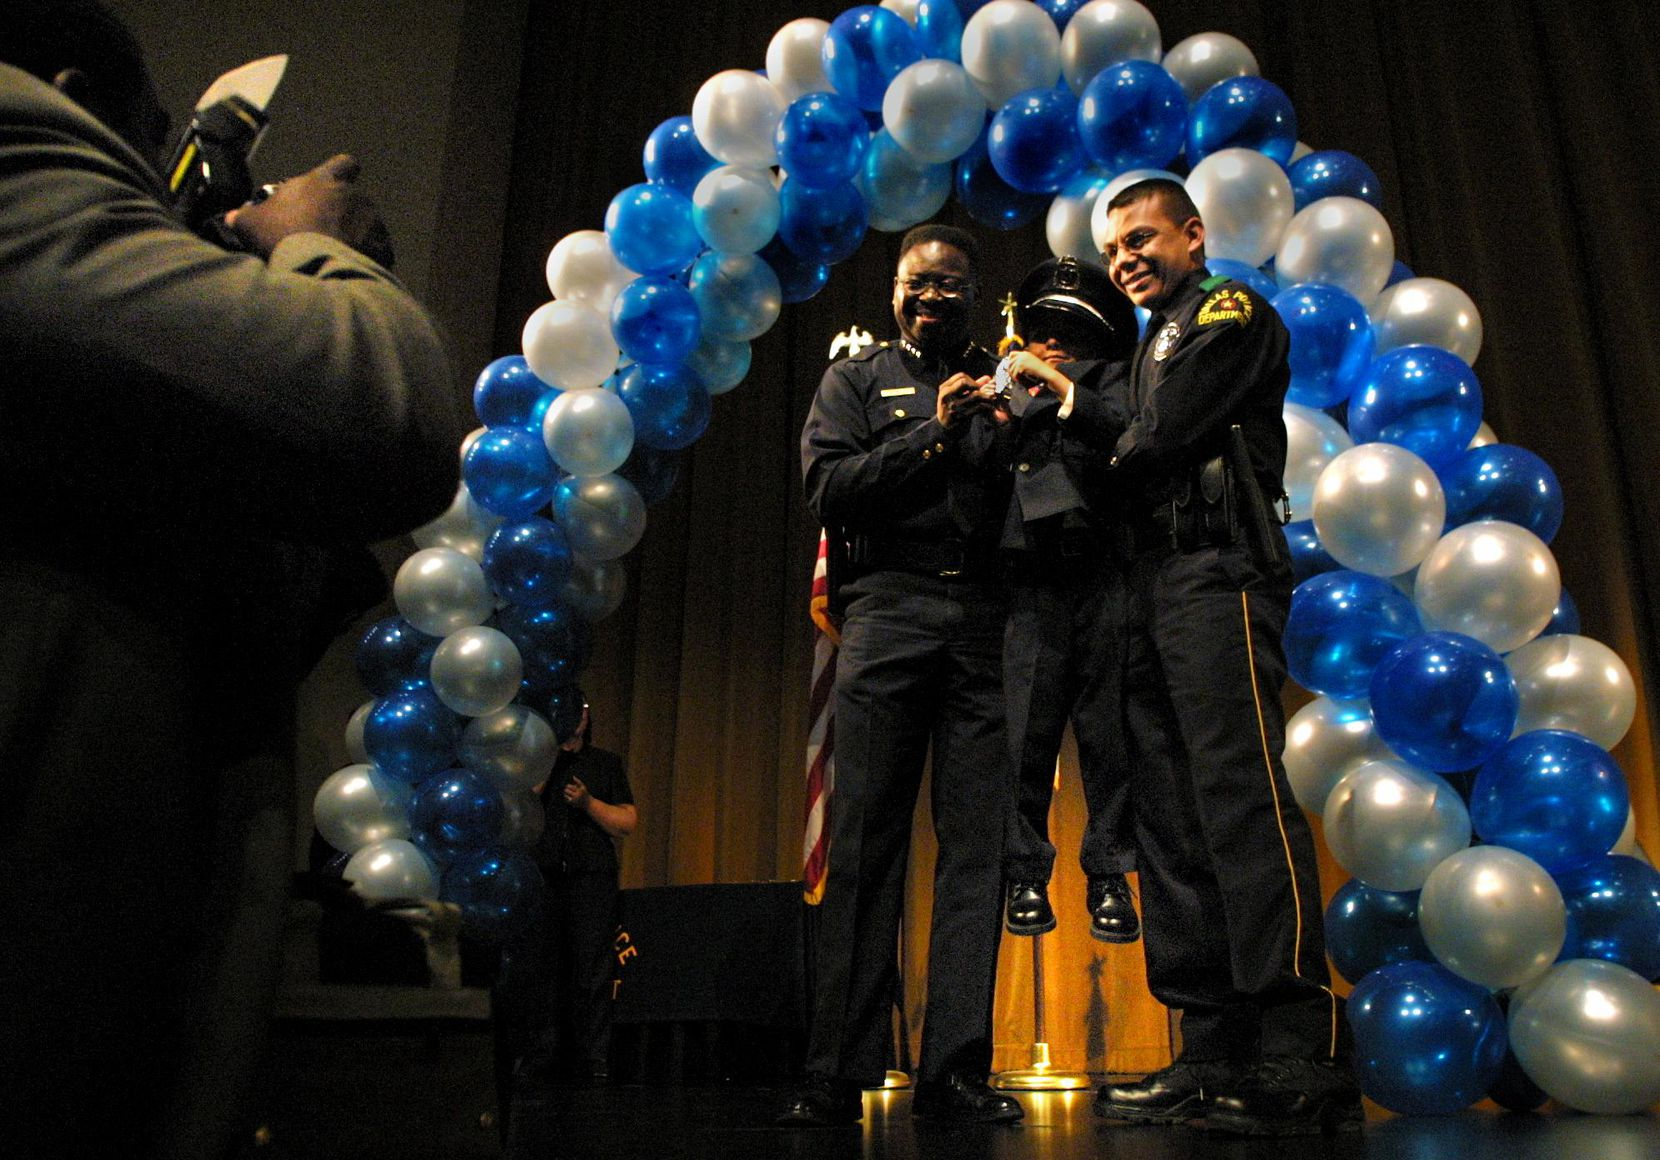 Former Dallas Police Chief Terrell Bolton, left, and newly-promoted senior corporal Joe R. Ramos, Jr., right, give Joe's son Christian Ramos, 6, a boost for a photo taken by senior corporal Chris Gilliam, far left, during the Dallas Police Department promotion ceremony at the Dallas Black Academy of Arts and Letters in downtown Dallas in 2002.